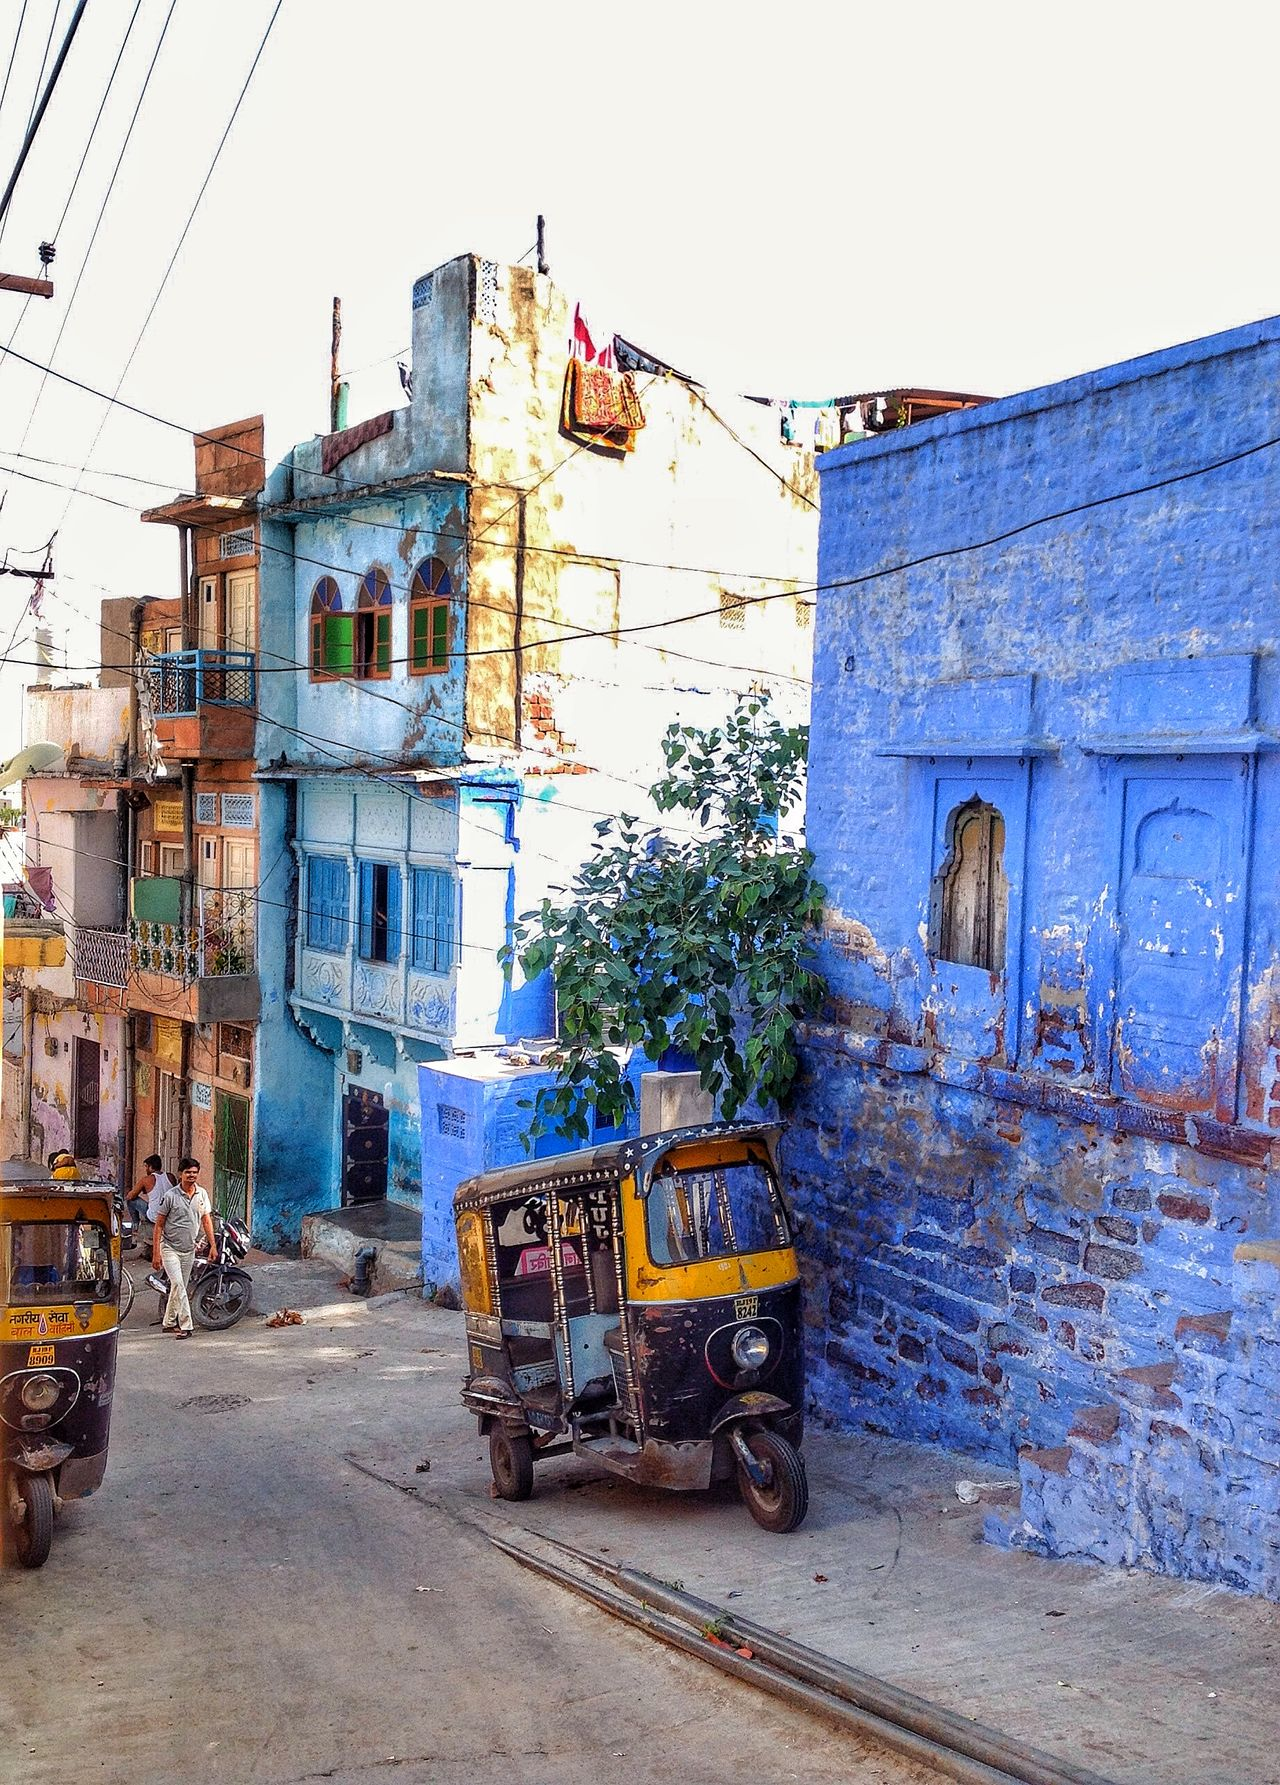 Architecture Building Building Exterior Built Structure Cable City City Life Day India Jodhpur Mode Of Transport Outdoors Parked Parking Power Line  Residential Building Residential Structure Sky Stationary The Street Photographer - 2016 EyeEm Awards Town Tuk Tuk The Blue City Jodhpur India Streets Of India